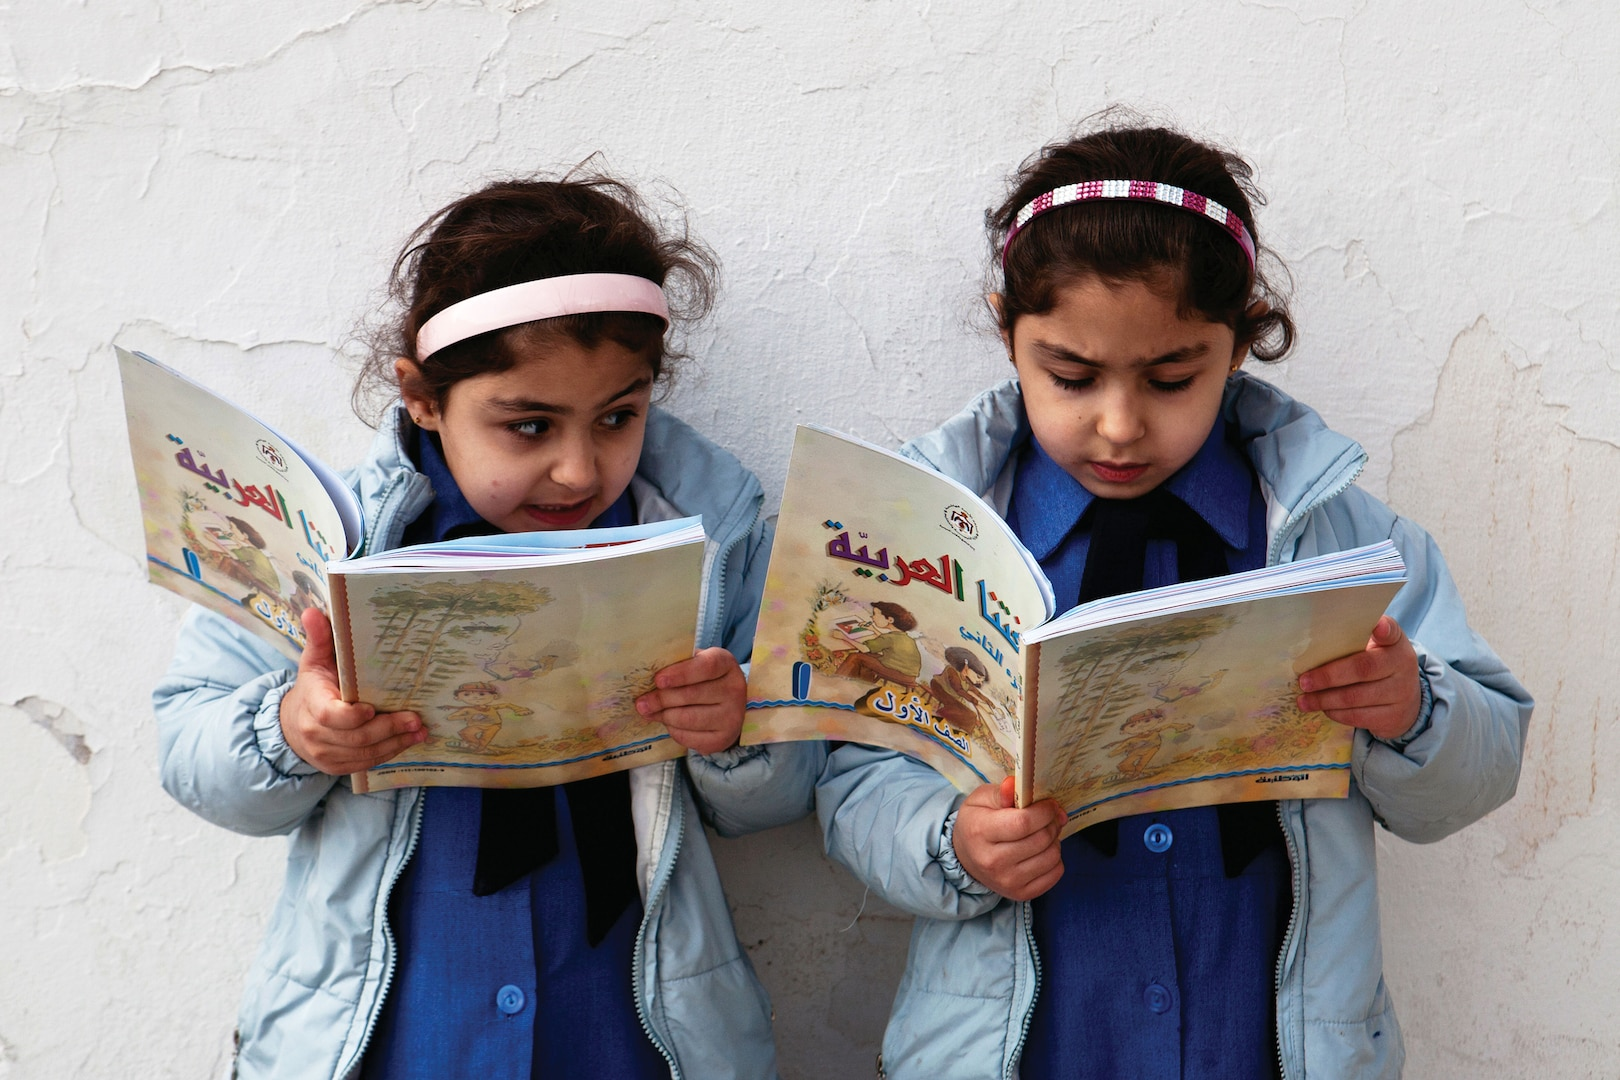 Young girls reading at a Jordanian primary school. Education and literacy are key elements of achieving gender equality.